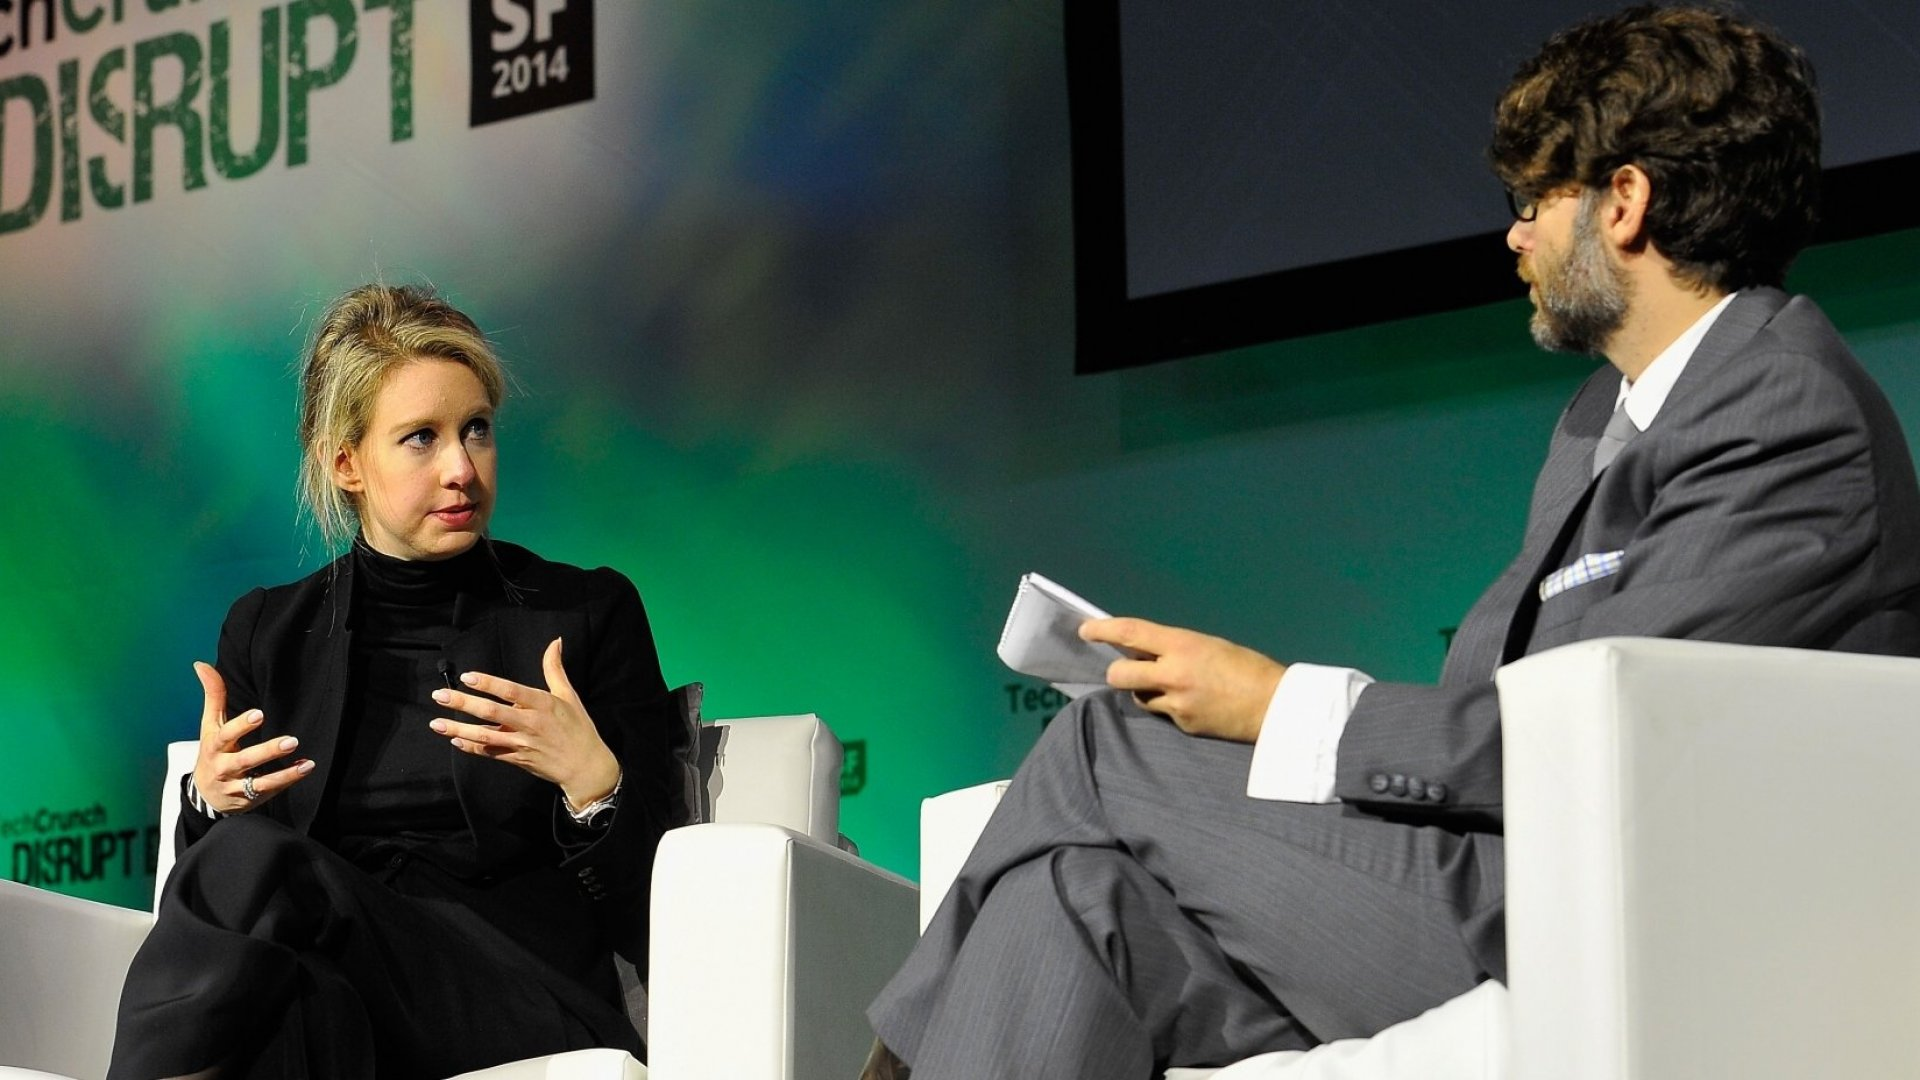 Theranos' Lab Practices 'Pose Immediate Jeopardy to Patient Health,' According to Government Agency